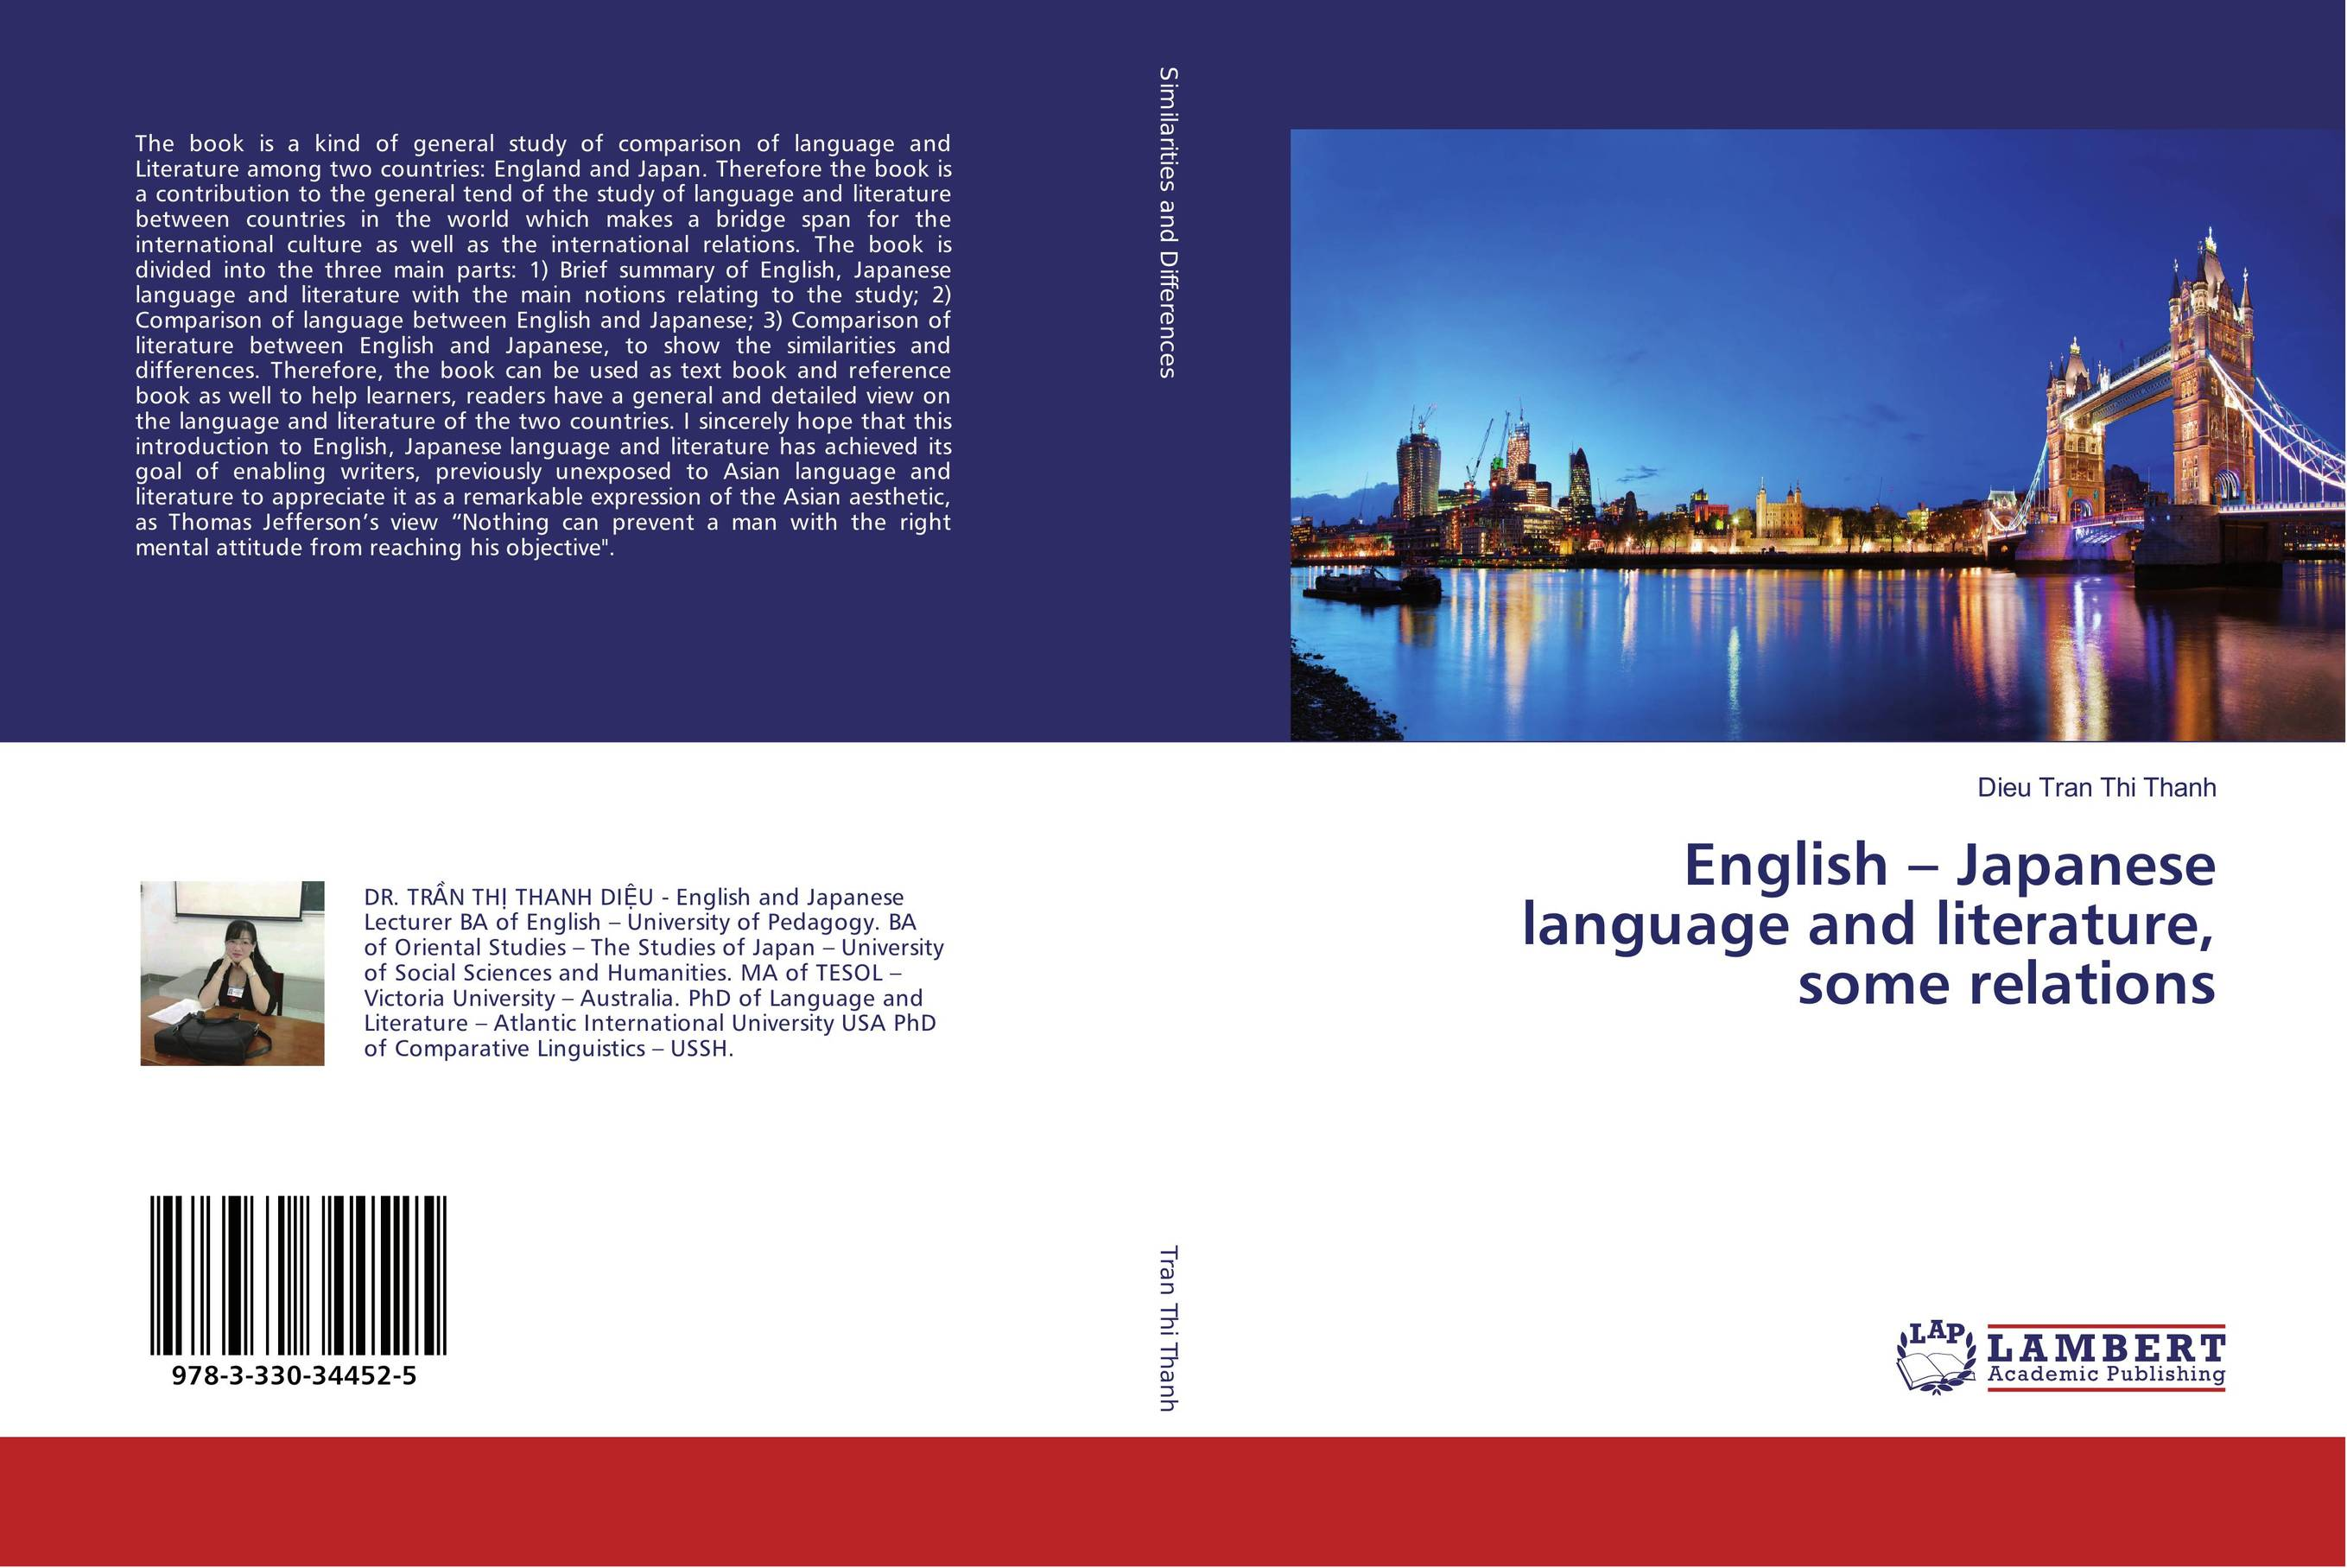 language and literature International journal of language and literature is an international double blind peer reviewed journal covering the latest developments in stylistic analysis, the linguistic analy.